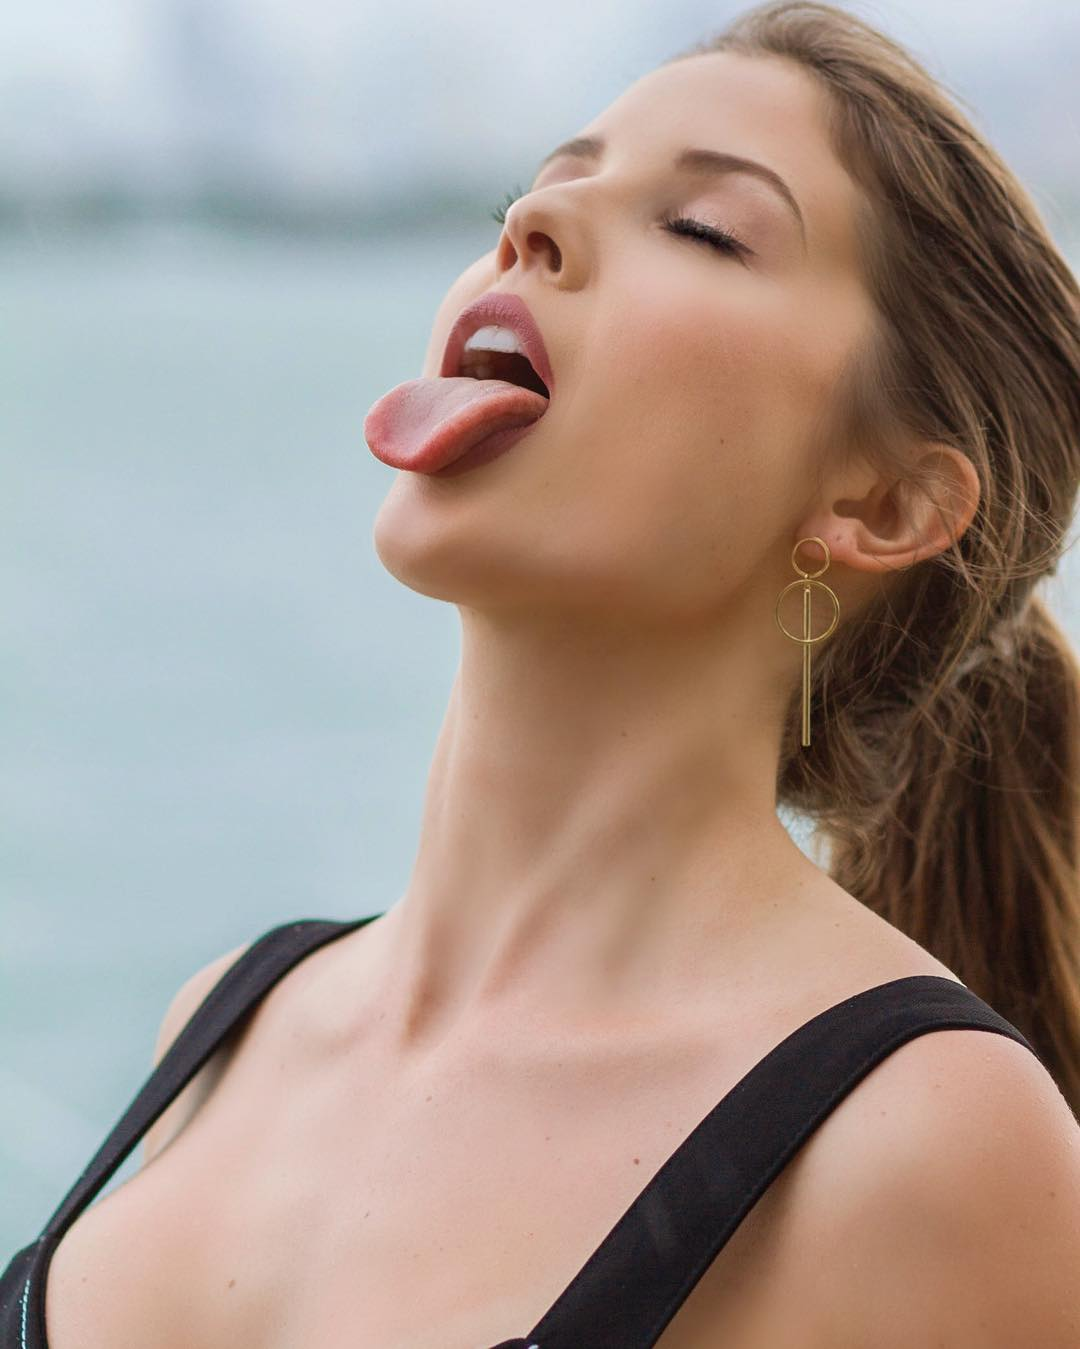 Share Girl naked sticking tongue out remarkable